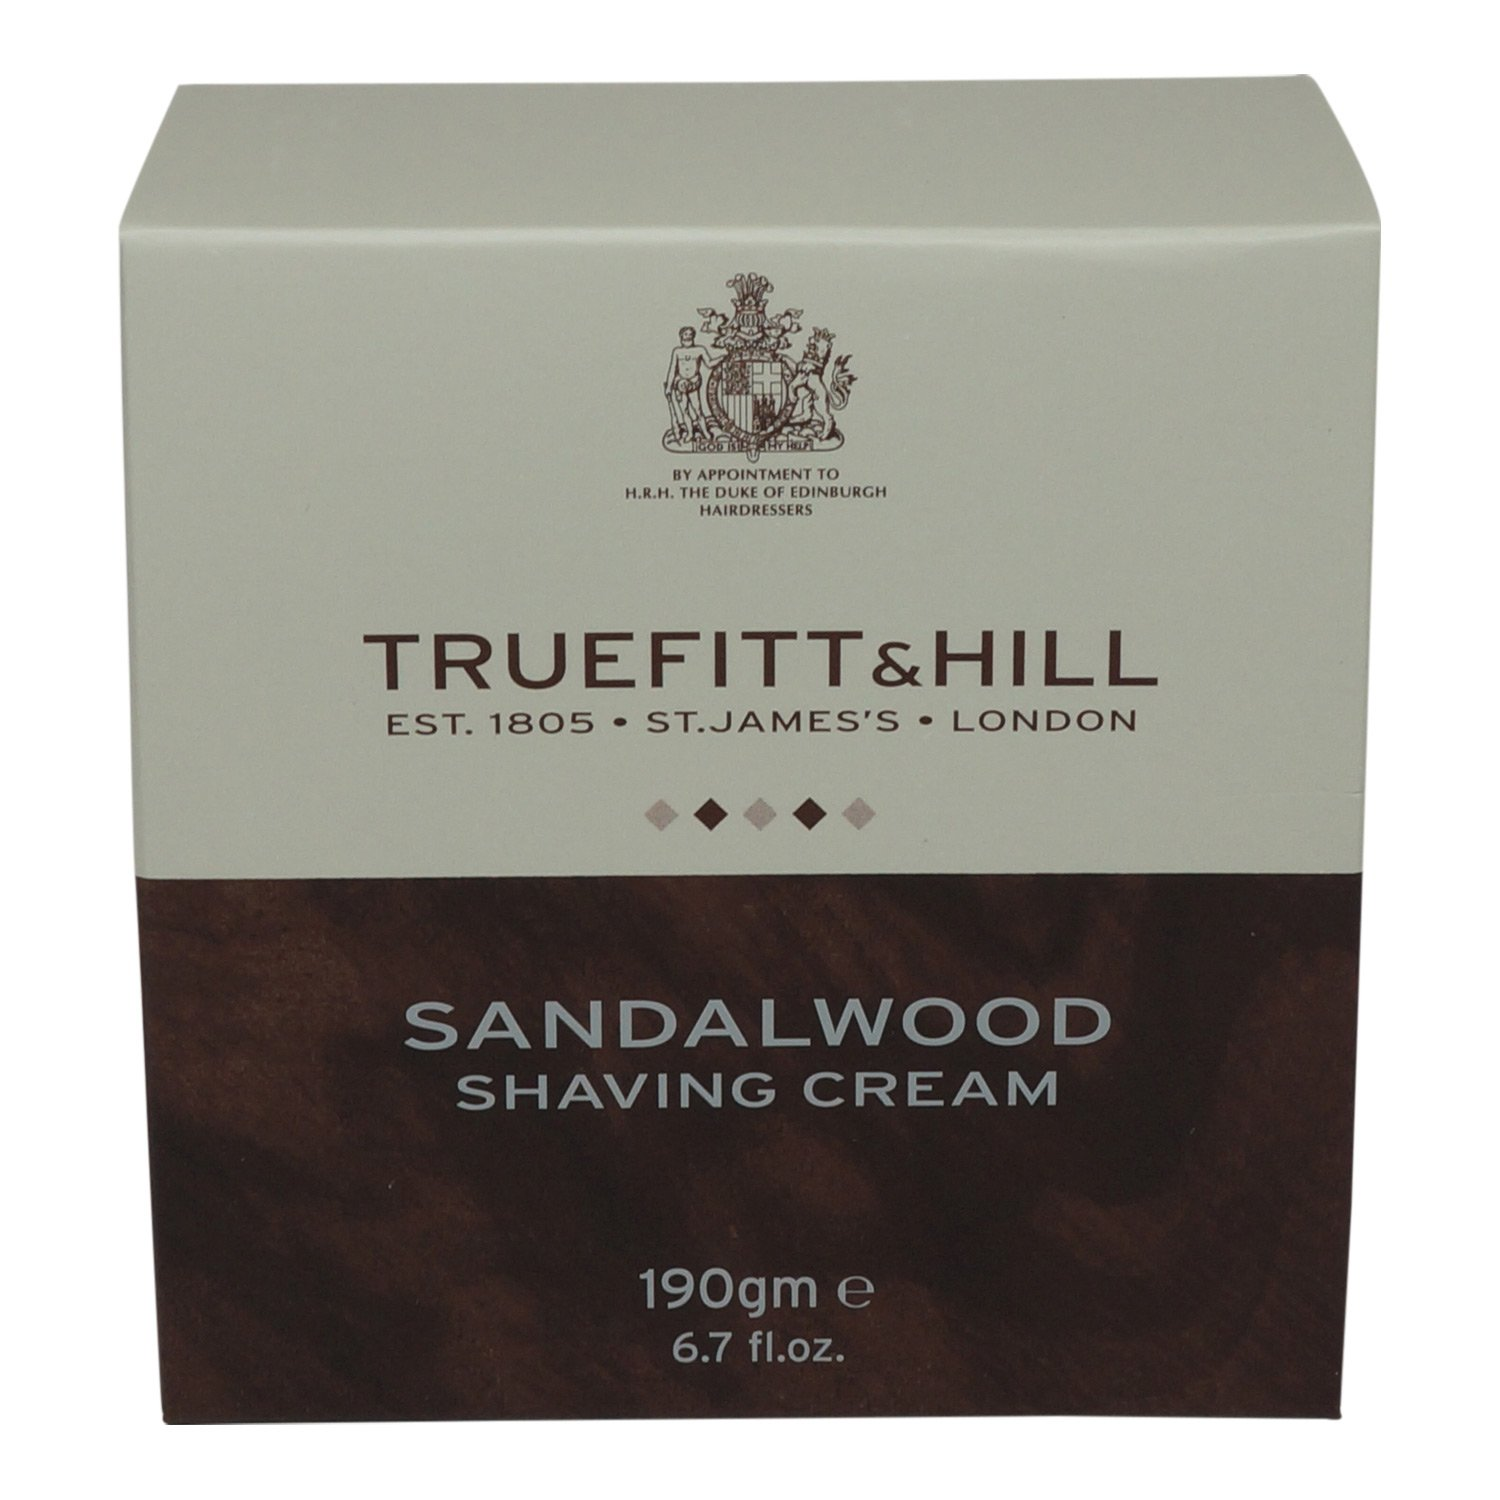 Truefitt & Hill - Sandalwood Shaving Cream 190g/6.7oz